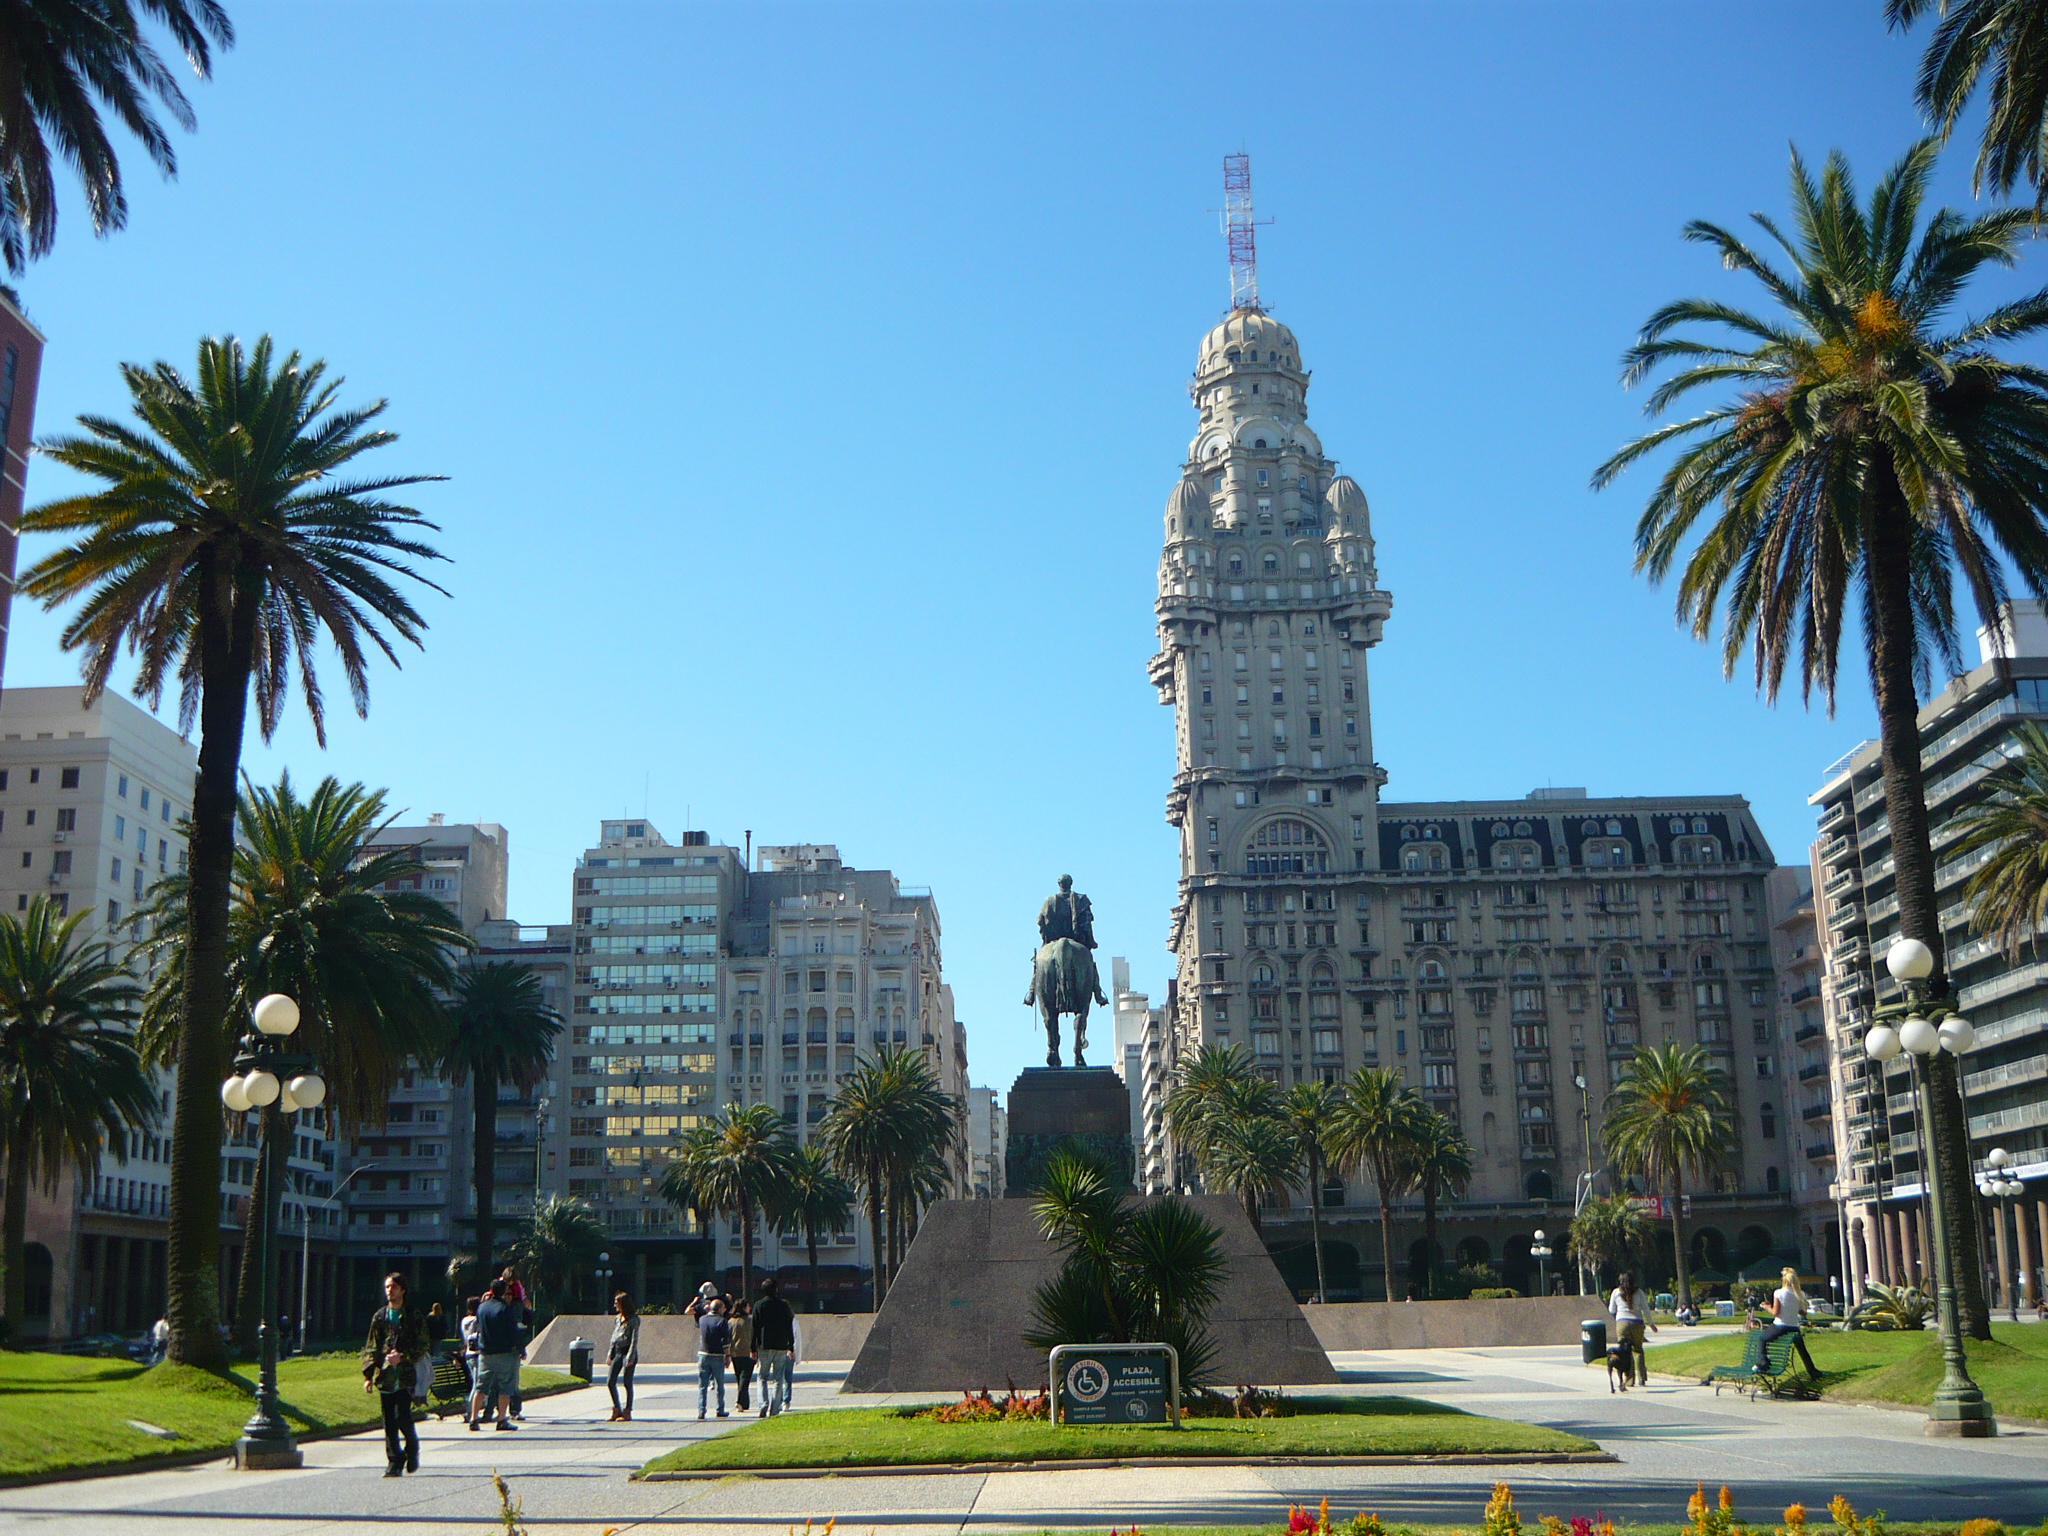 Plaza Independencia Montevideo, Plaza Independencia, Montevideo | Most Beautiful Places in the World